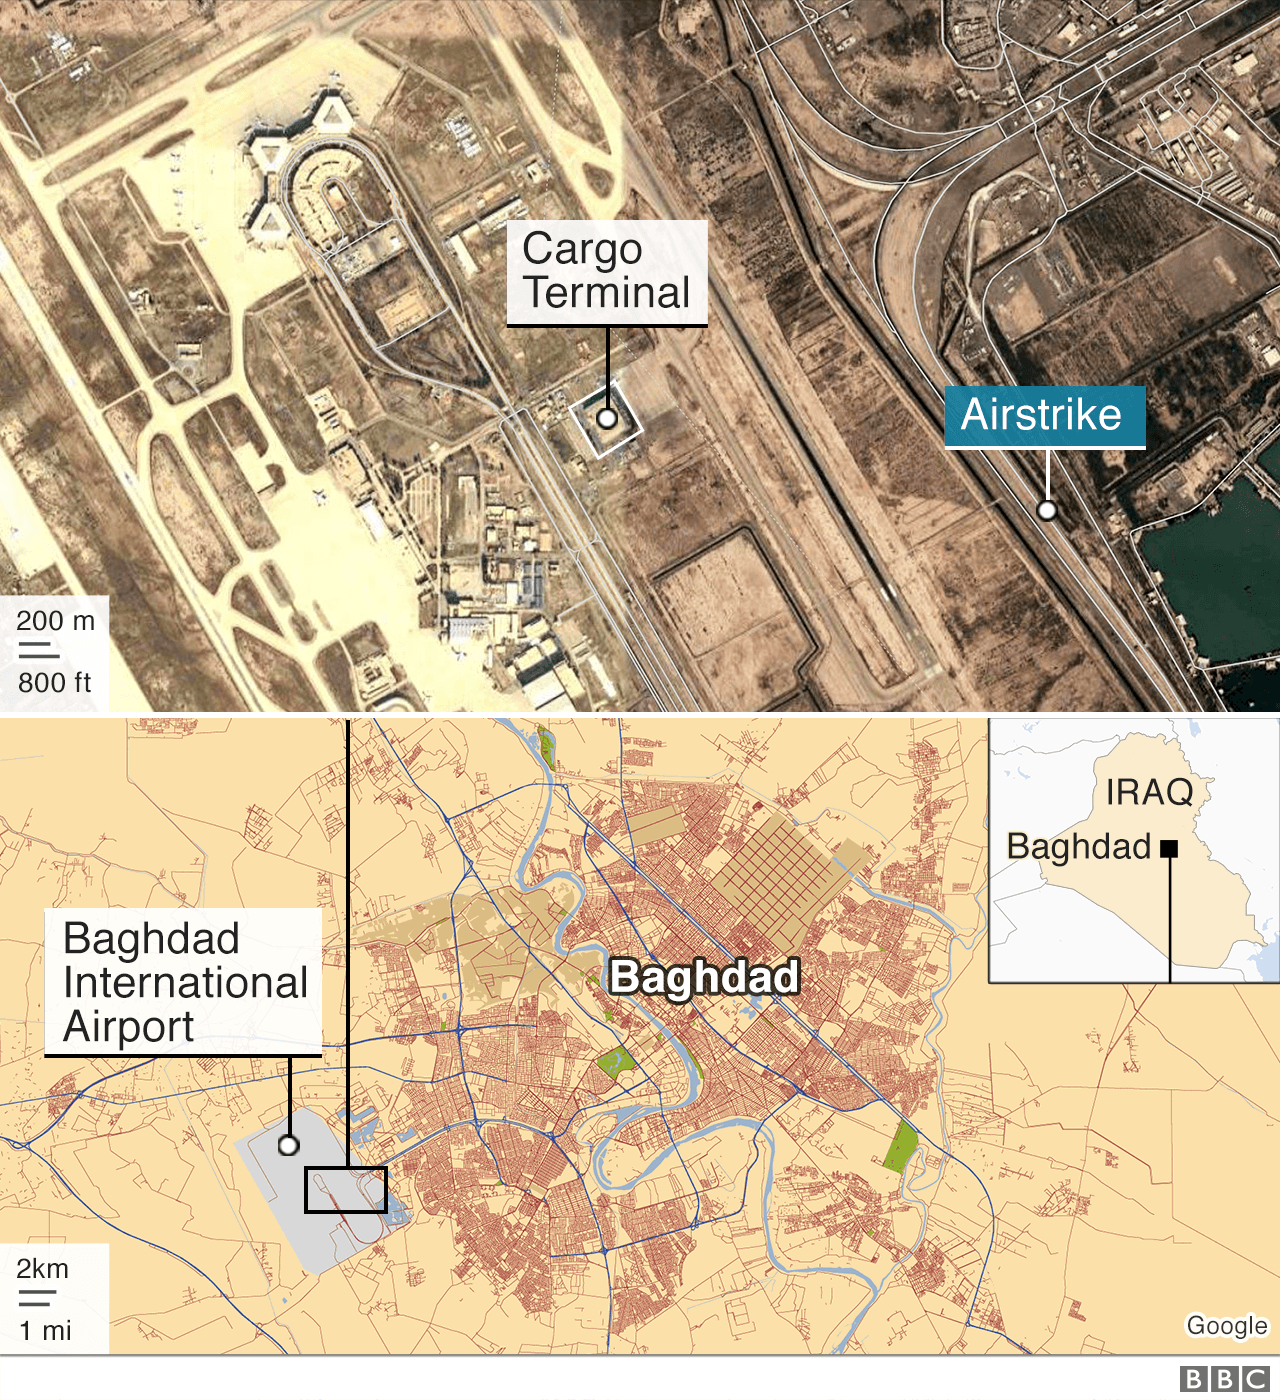 Map showing the location of the air strike